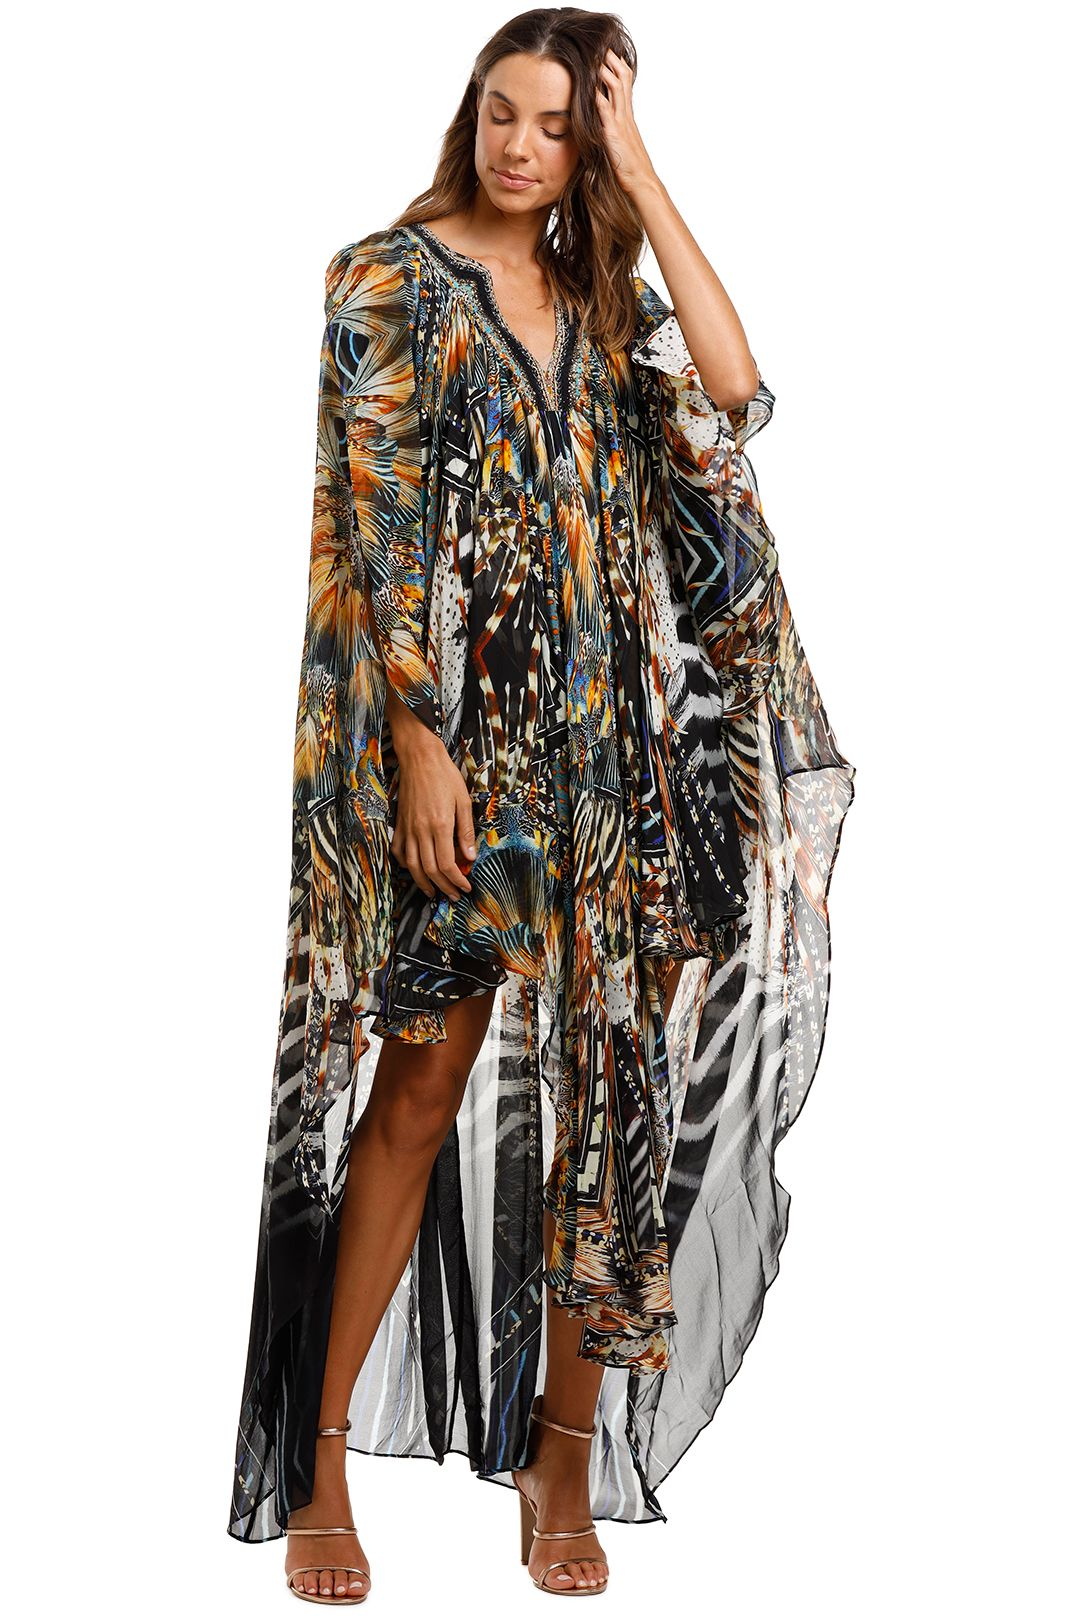 Camilla Long Angel Cape Lost Paradise Black